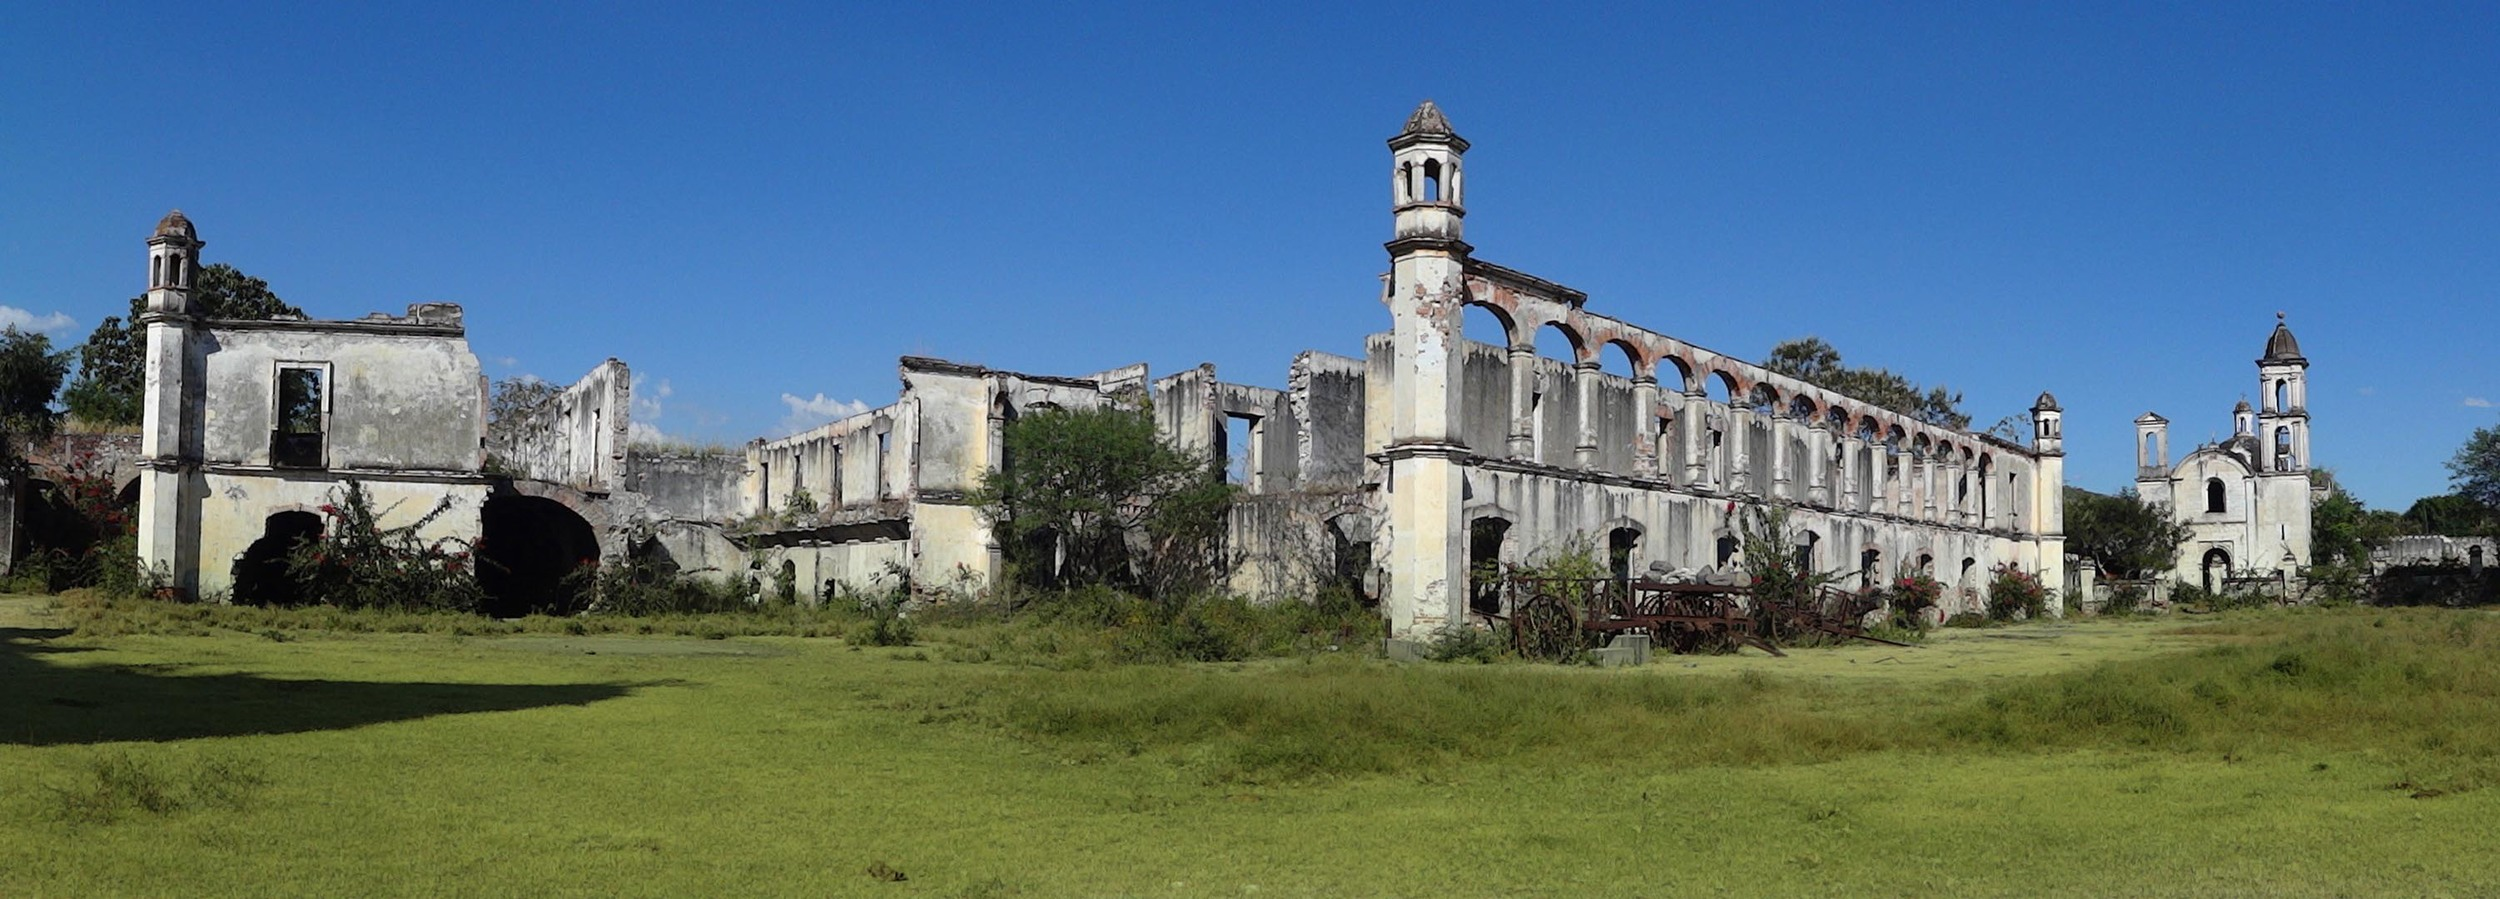 Picture of the Hacienda days before the beginnig of the restoration process.